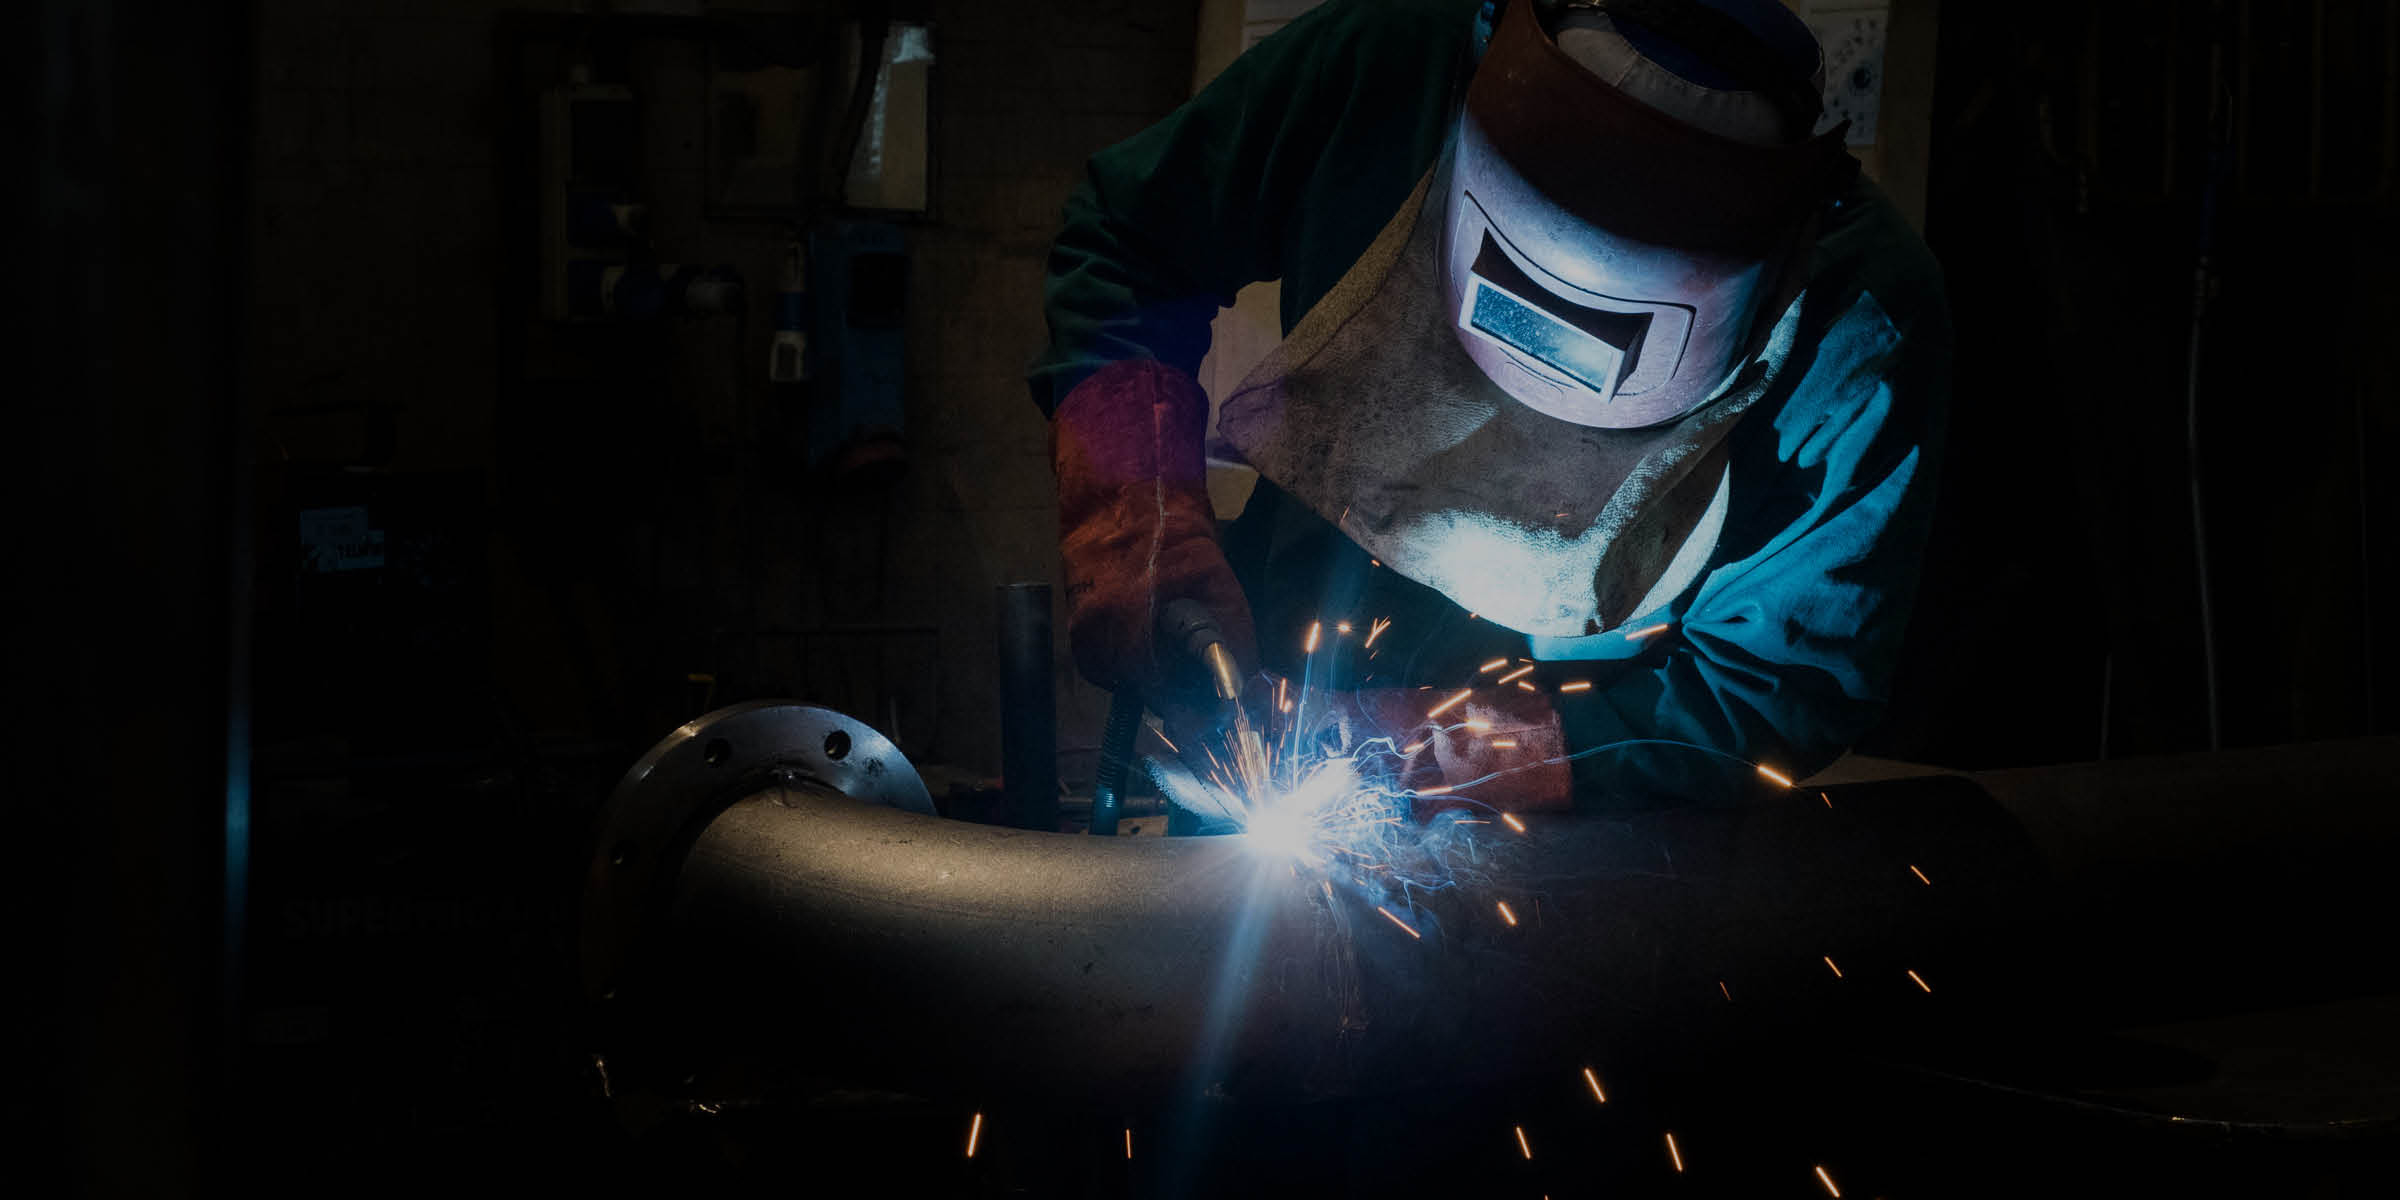 Metalworking, pipework and welding